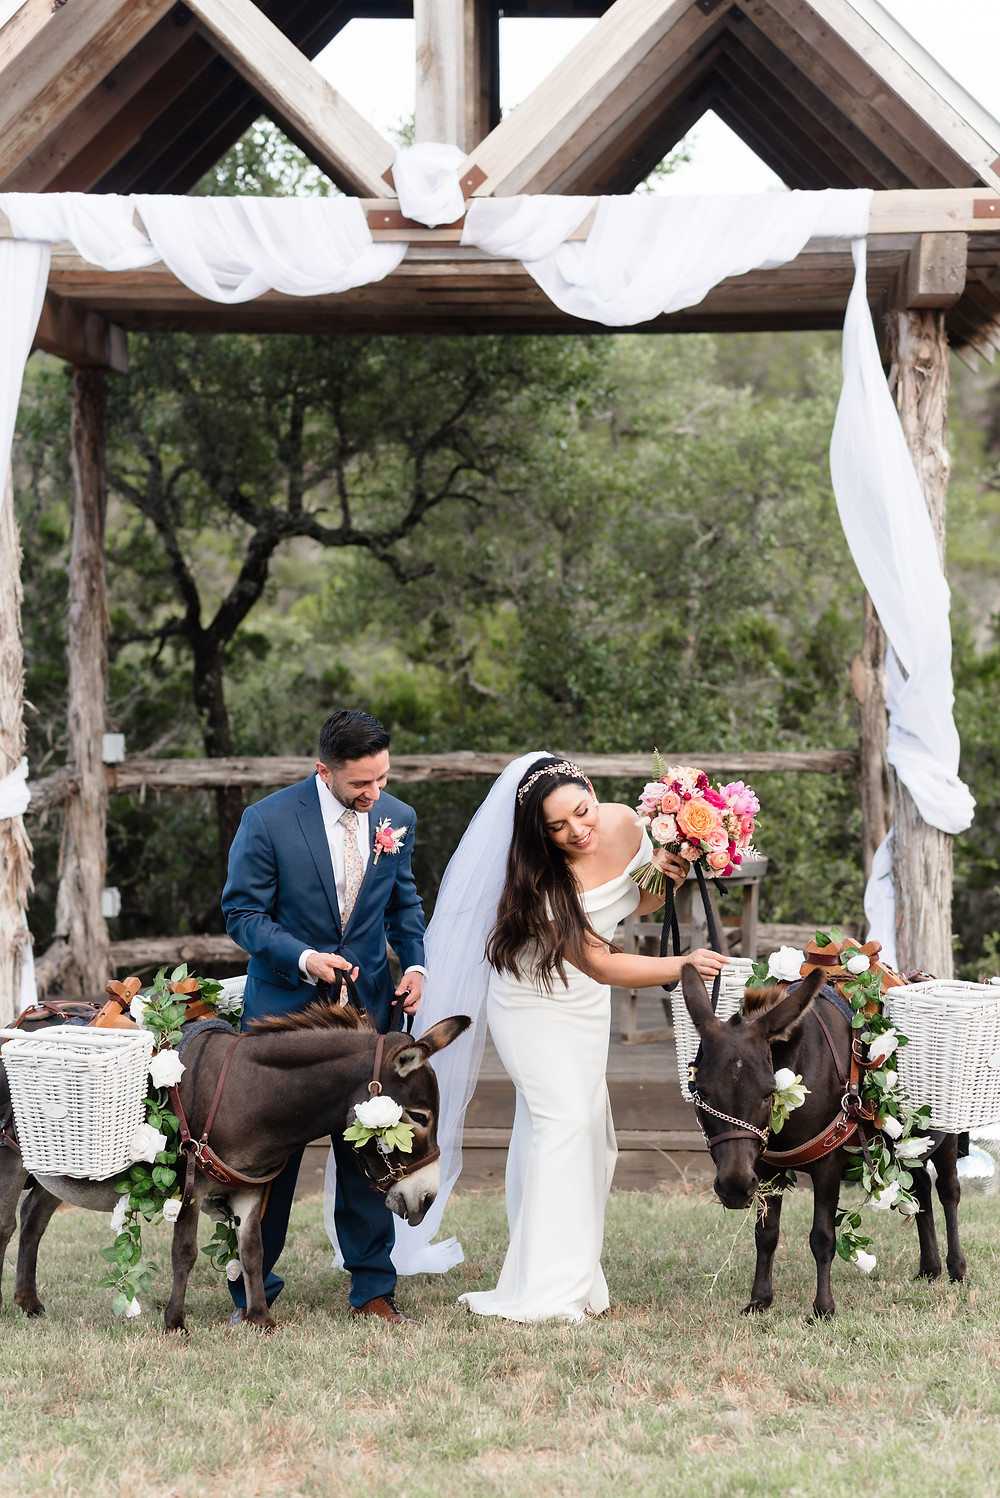 the wedding couple pets donkeys, which don flowers and baskets filled with beer. they are called beer burros and they came from the company Ears With Beers